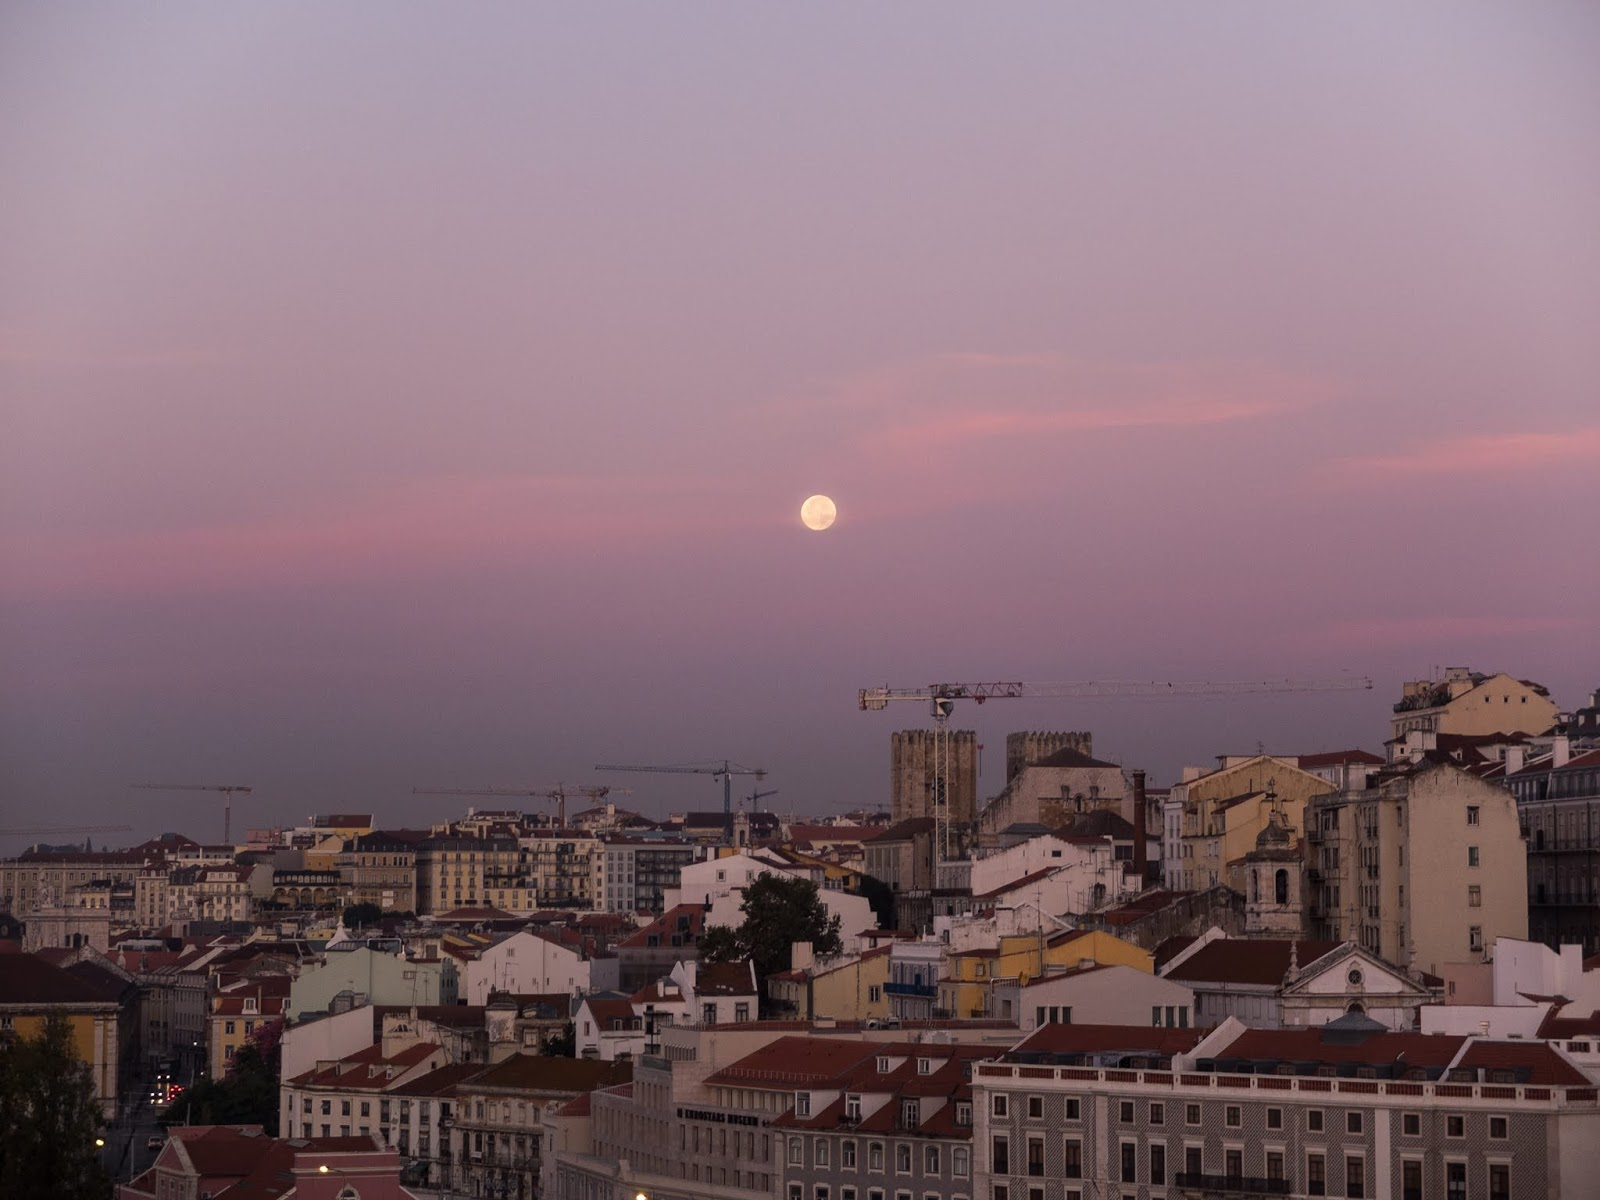 The moon over the city of Lisbon at dawn against a purple and pink sky.